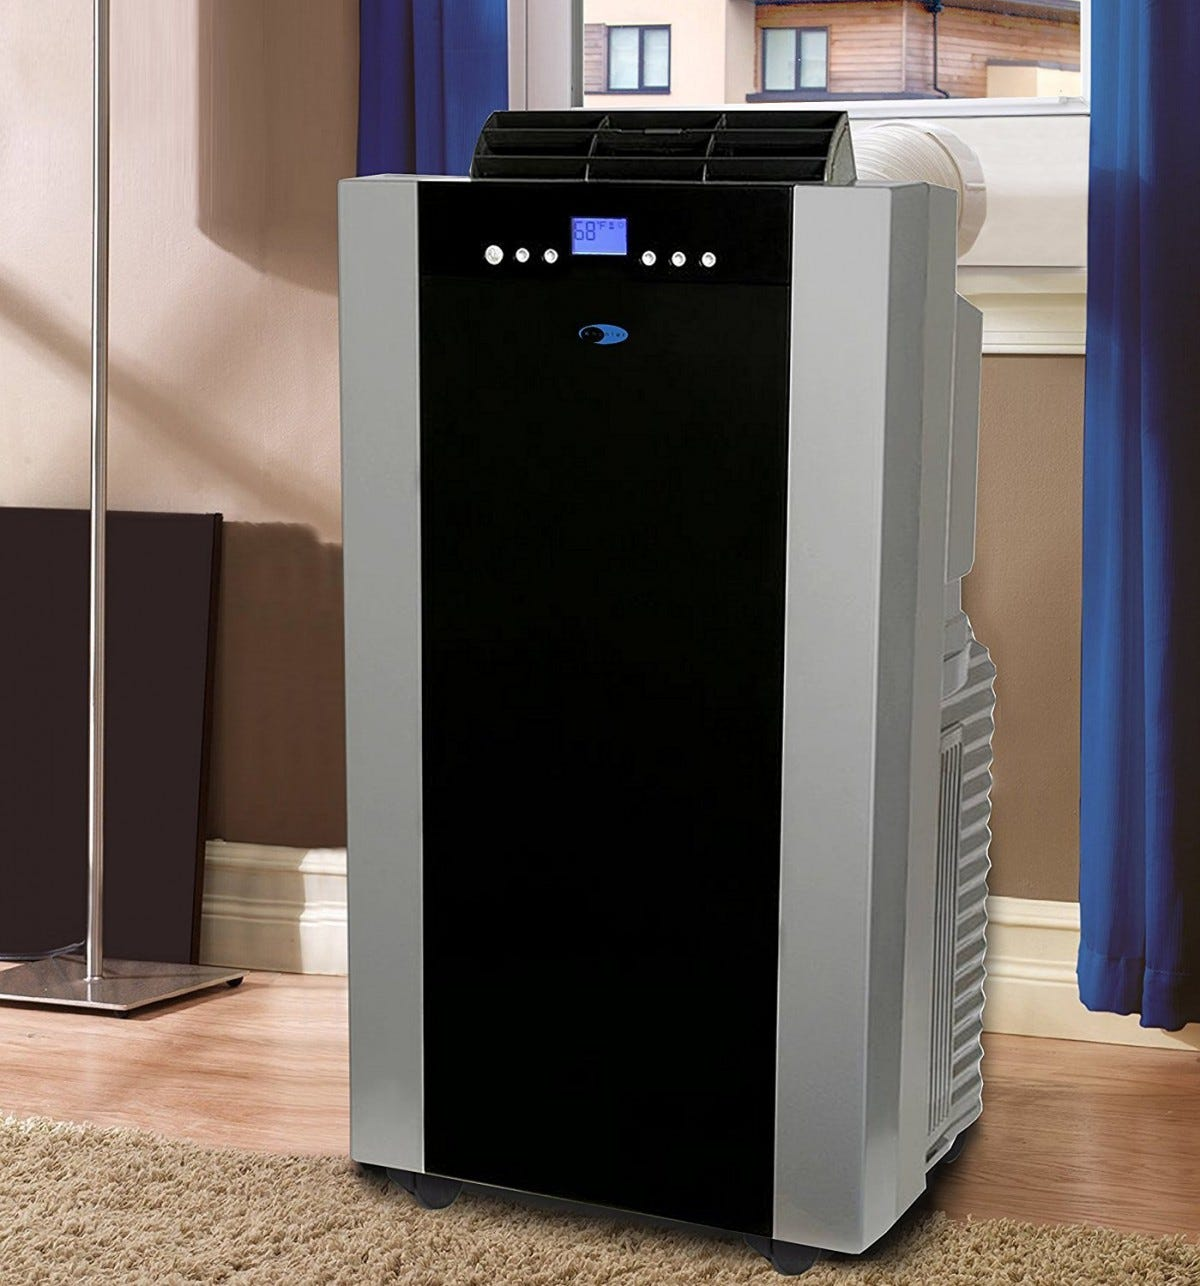 A portable AC unit is pricey, but more flexible than a semi-permanent window installation.